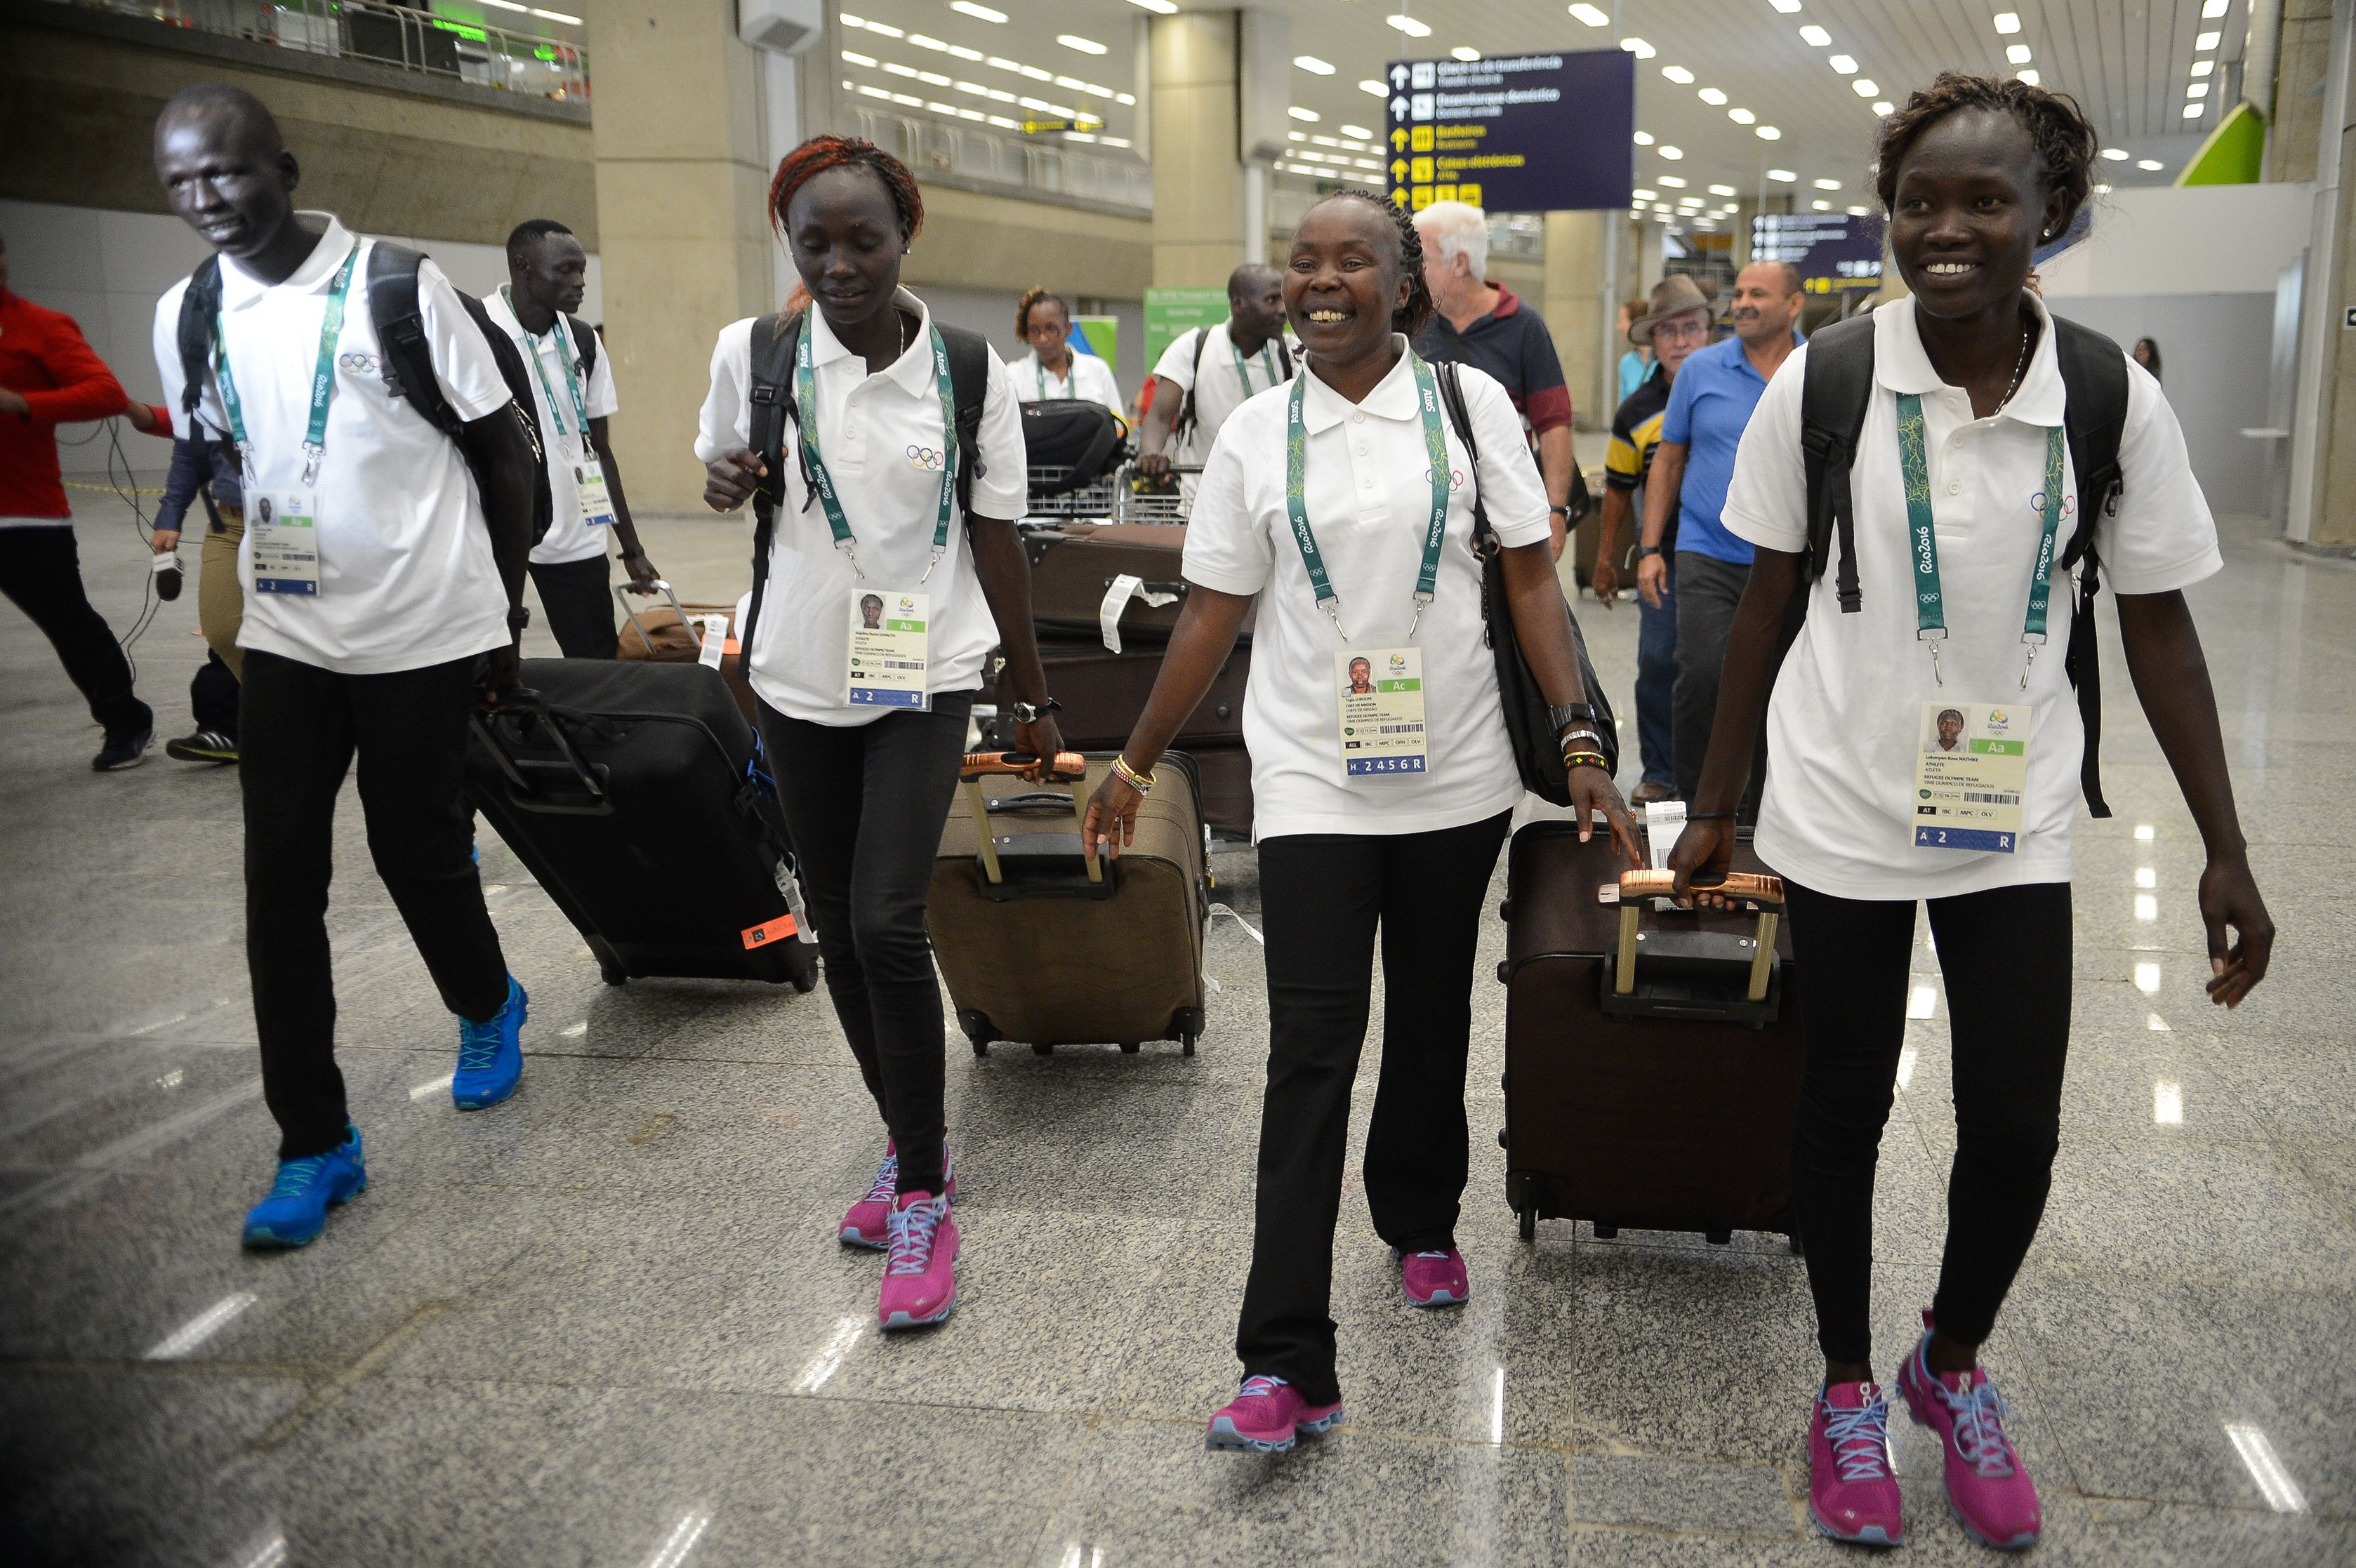 Refugee athletes at the Rio 2016 Olympics. They are standing in a line in an airport, wheeling suitcases and smiling.